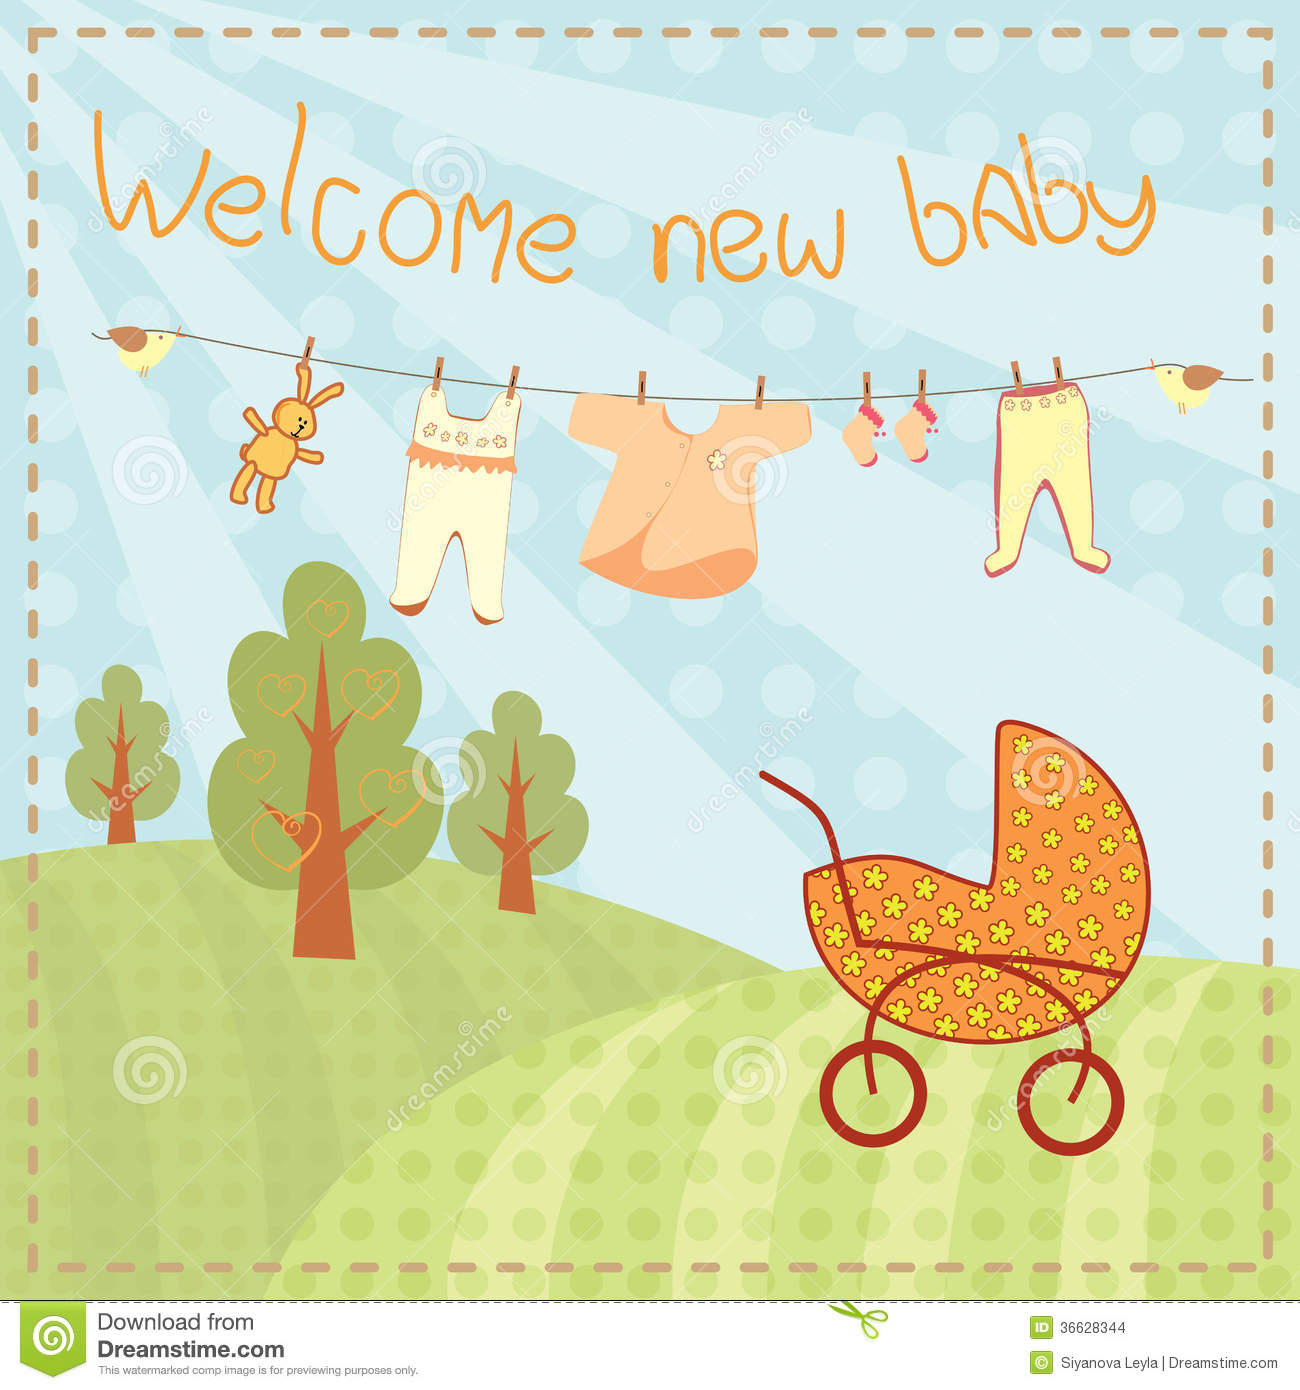 Welcome new baby greeting card stock vector illustration of girl welcome new baby greeting card m4hsunfo